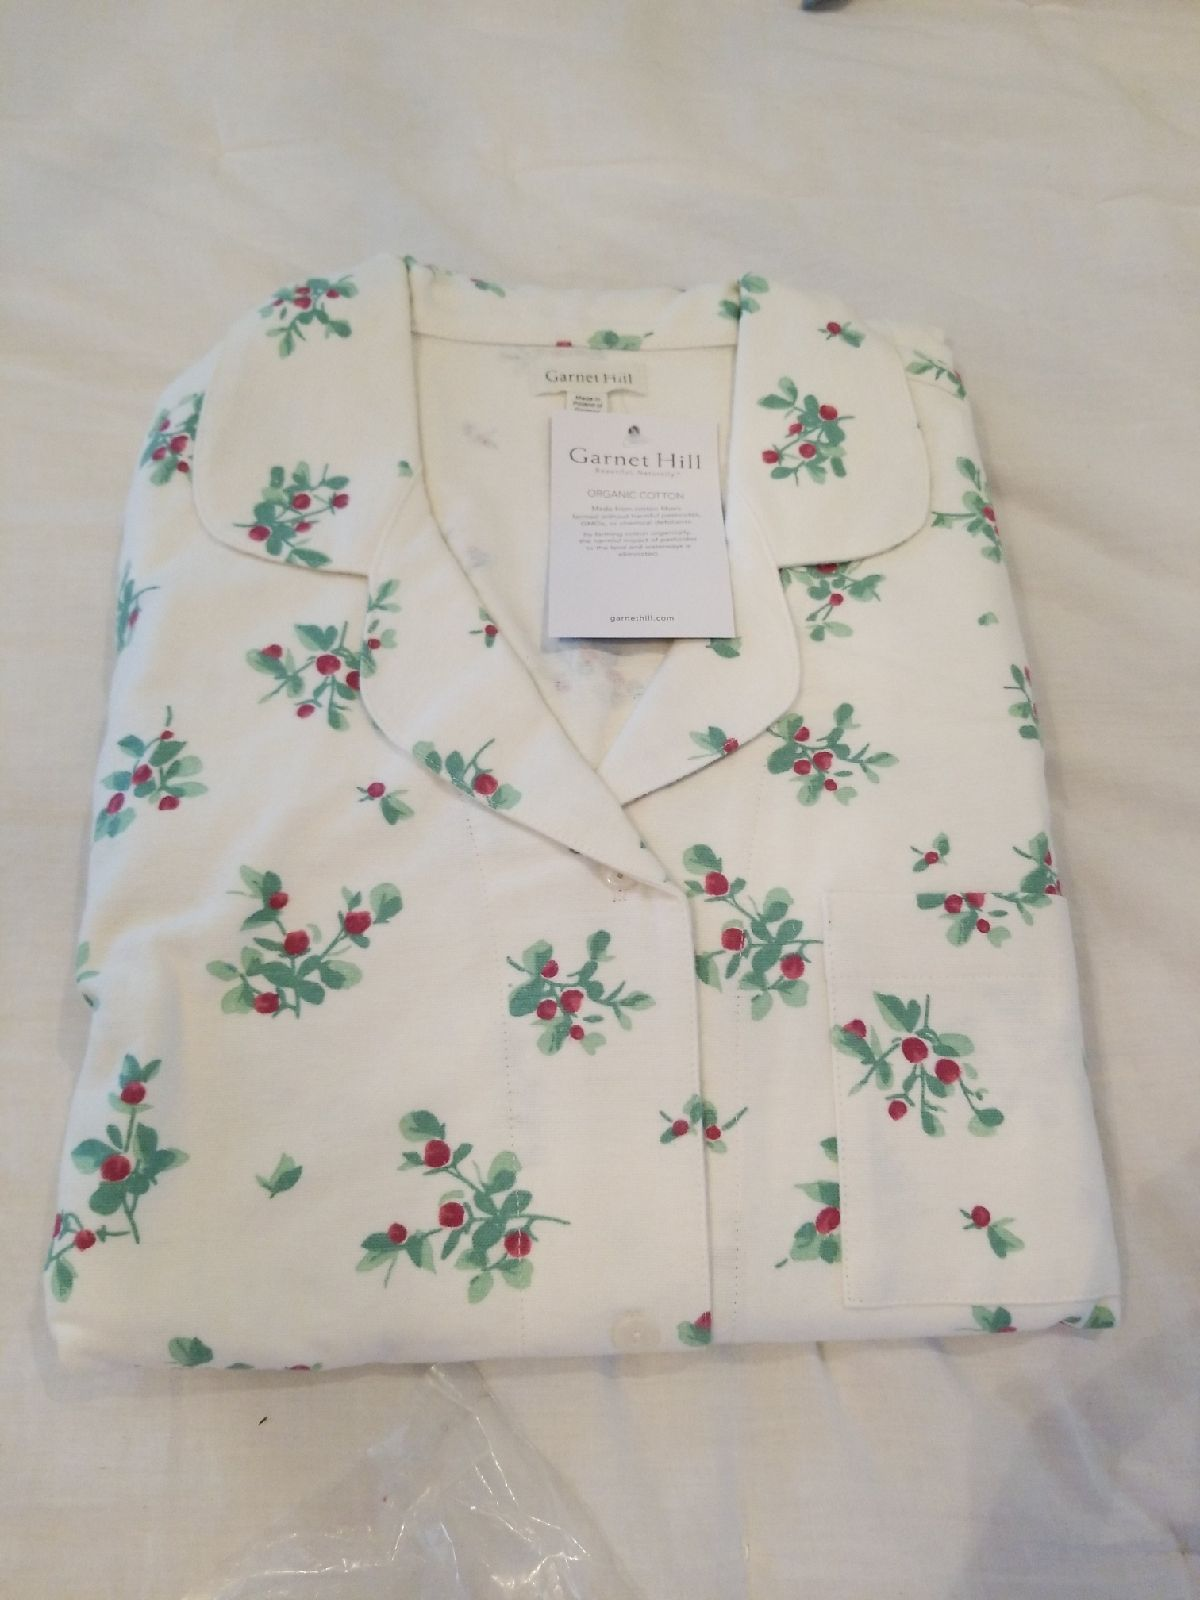 ⁰NWT Garnet Hill Organic Cotton PJ set